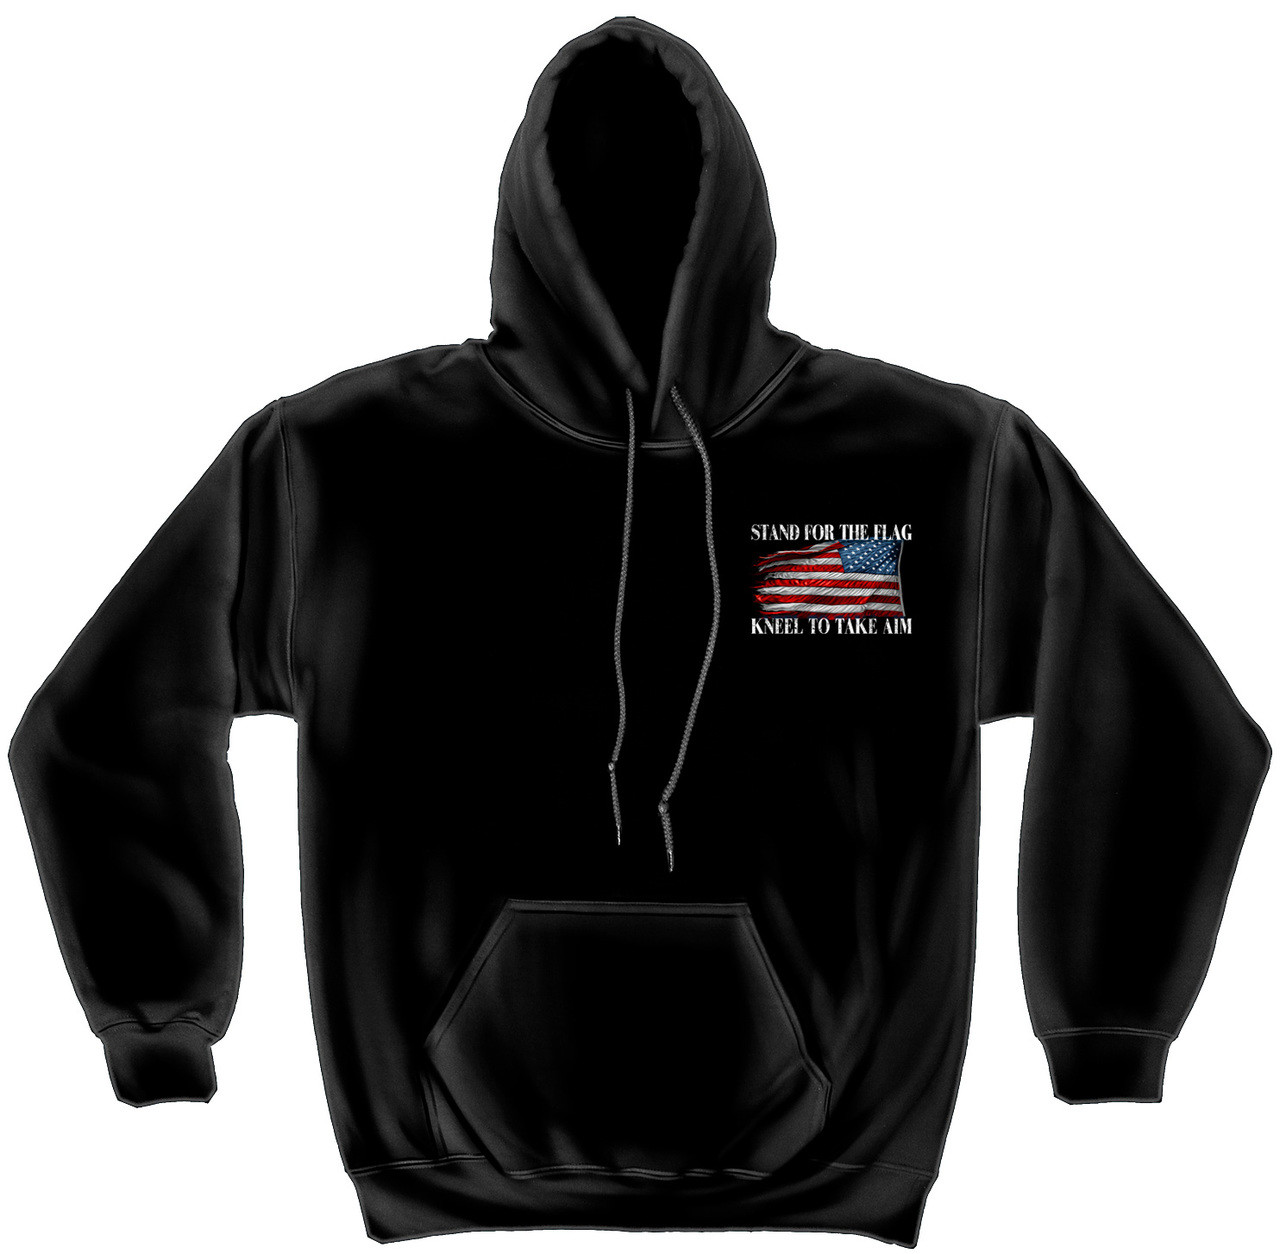 san francisco 4b5da 833db **(OFFICIALLY-LICENSED-U.S.MILITARY-COMBAT-VETERANS &  PATRIOT-STAND-FOR-THE-FLAG/KNEEL-AND-TAKE-AIM,NICE-DETAILED-GRAPHIC-CUSTOM-GRAPHIC-PRINTED/PREMI...